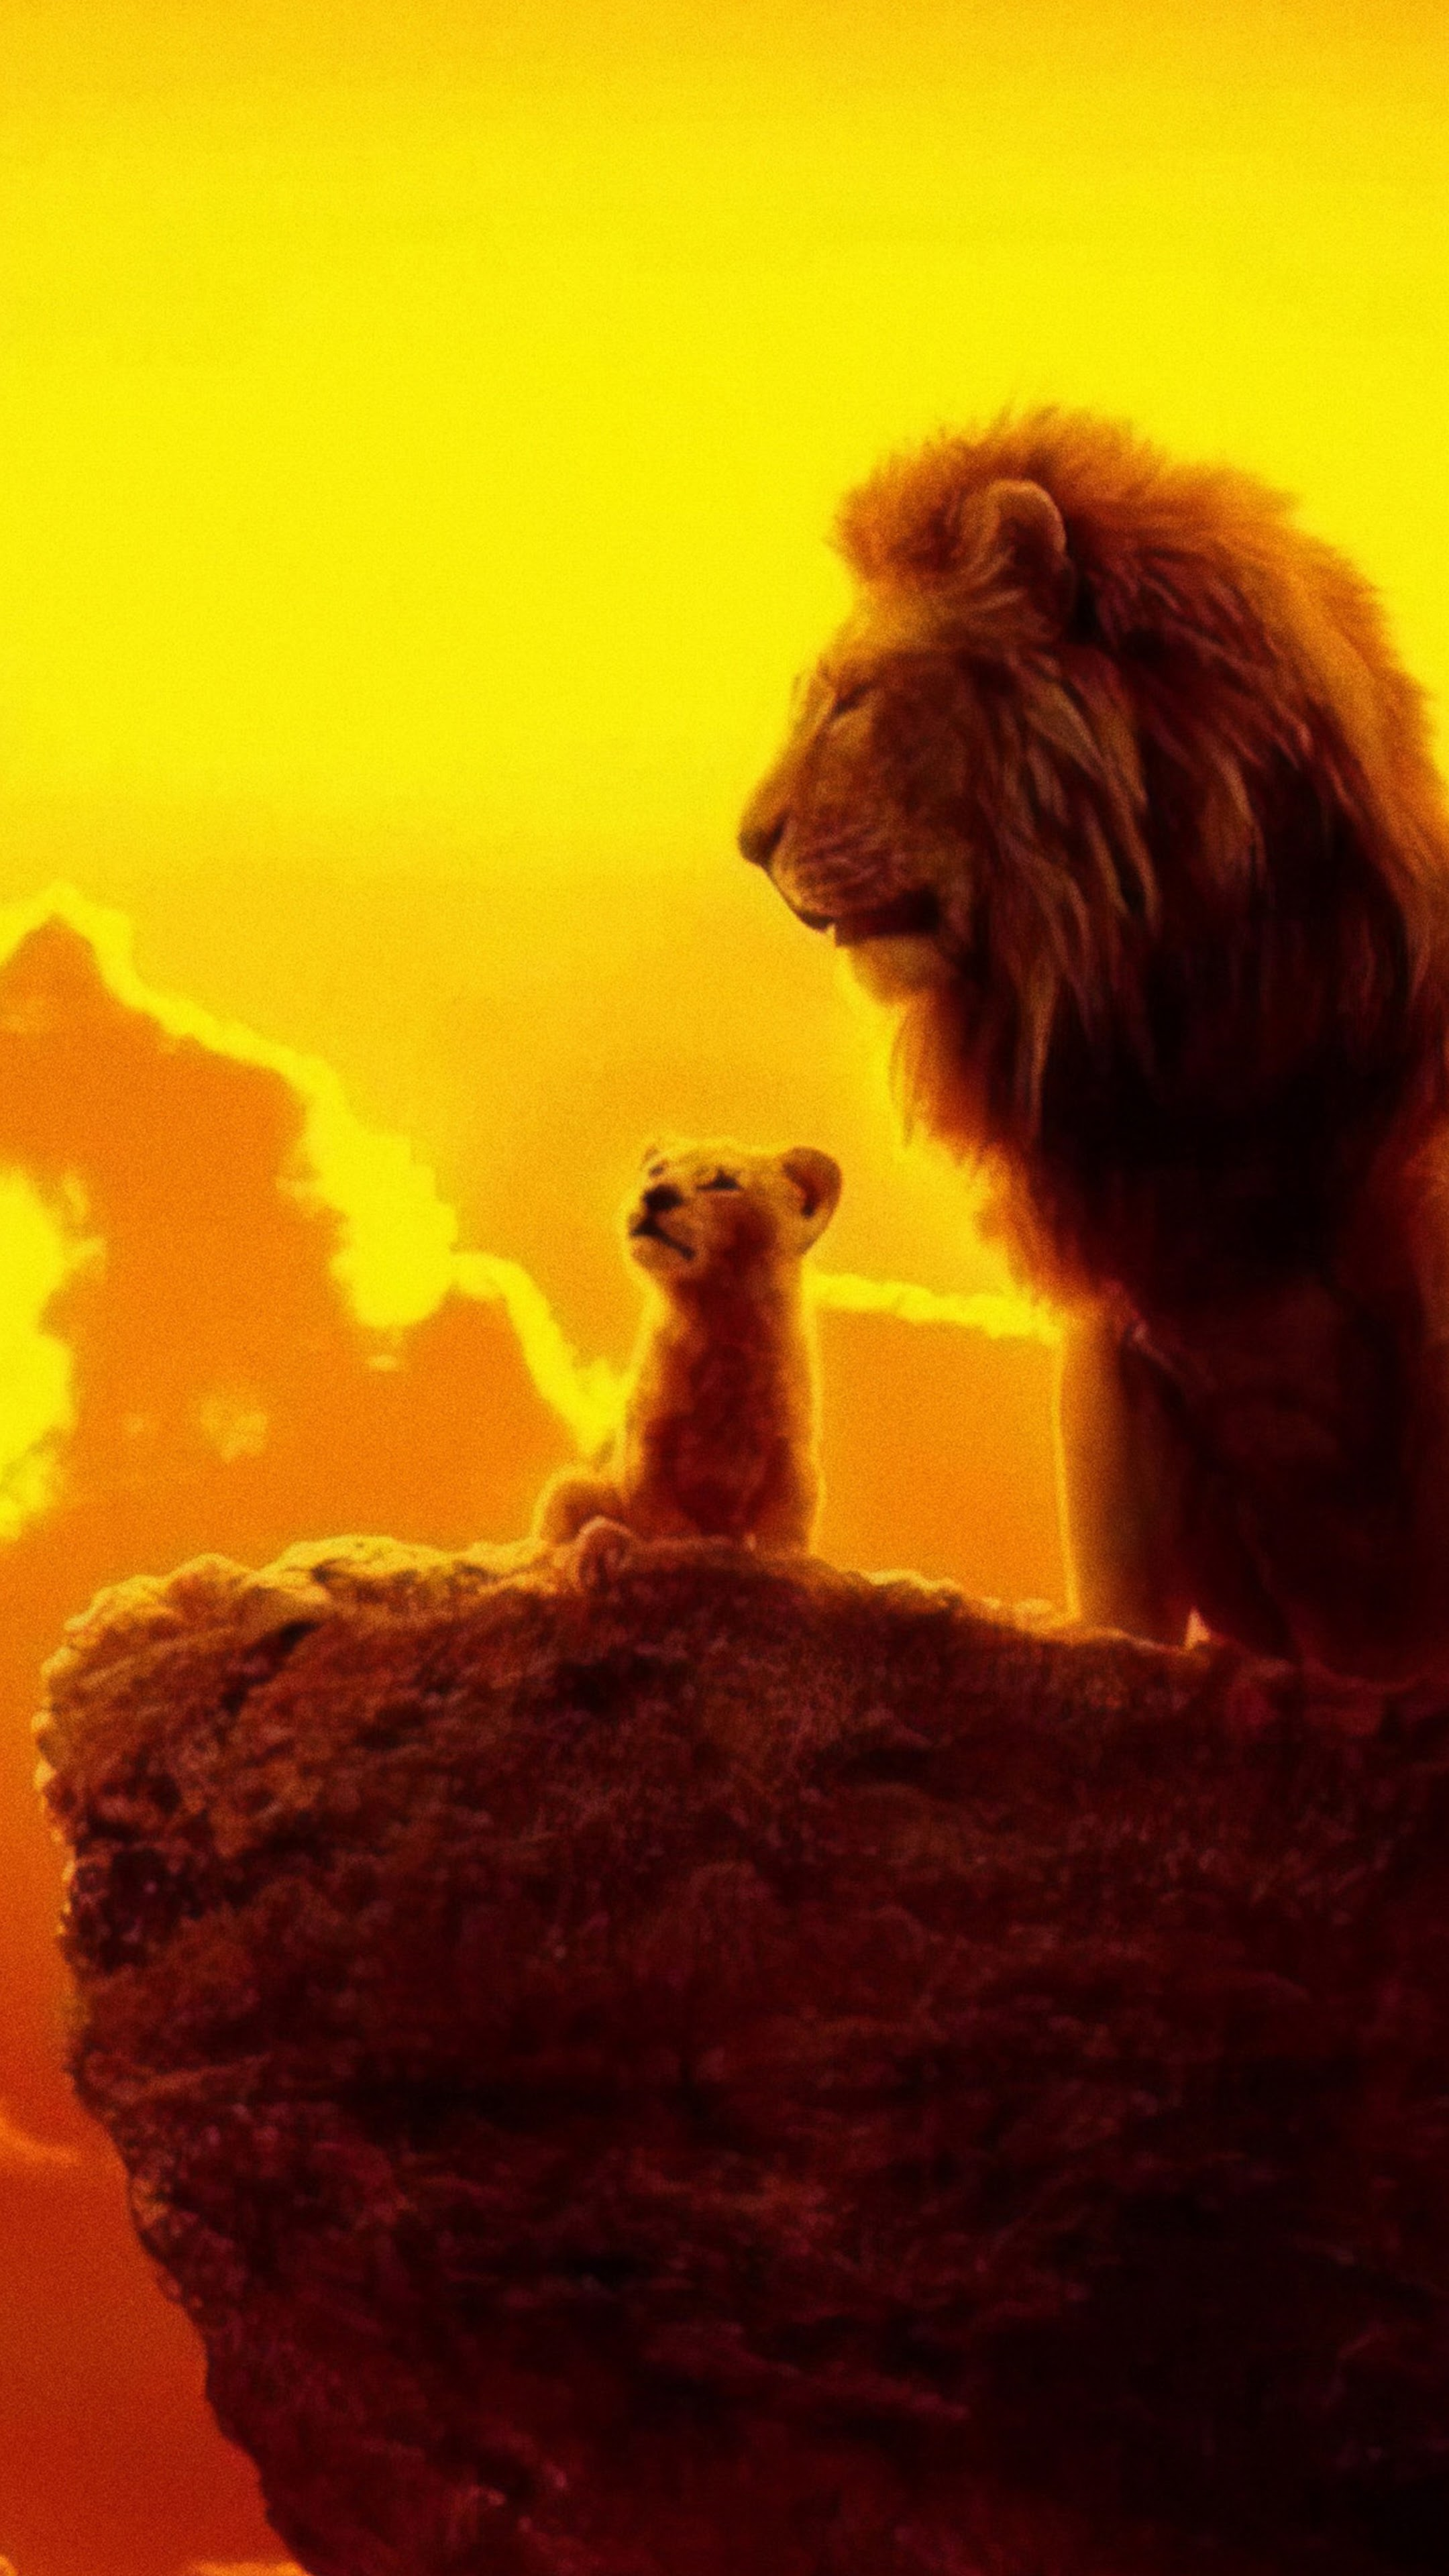 The Lion King 2019 Mufasa Simba 4k Wallpaper 19